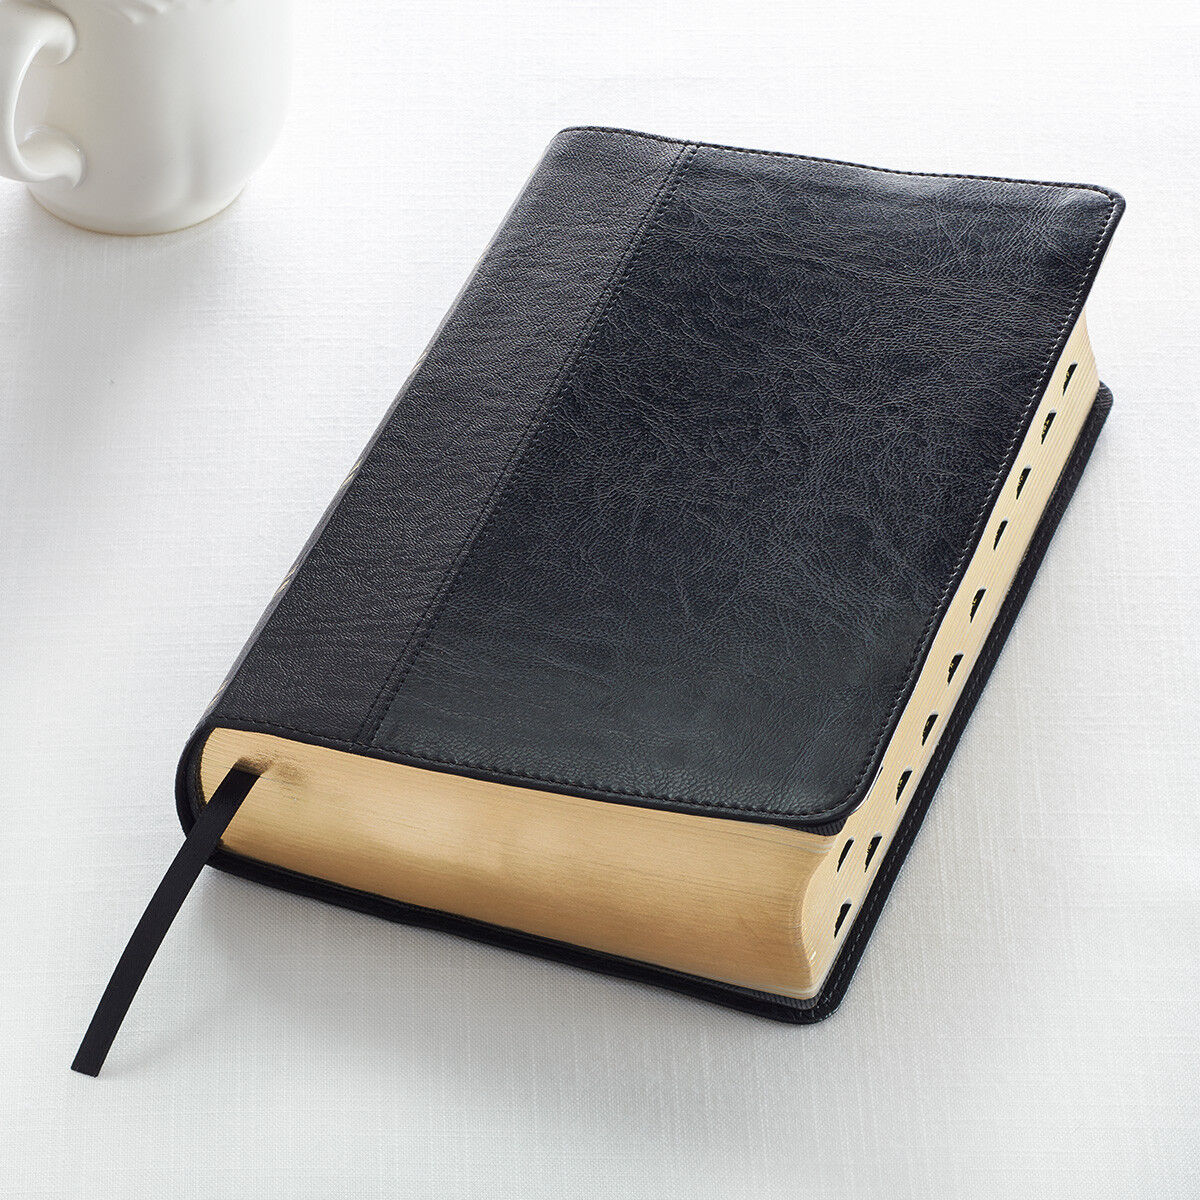 Kjv Holy Bible King James Version Black Giant Print Thumb Indexing Faux Leather